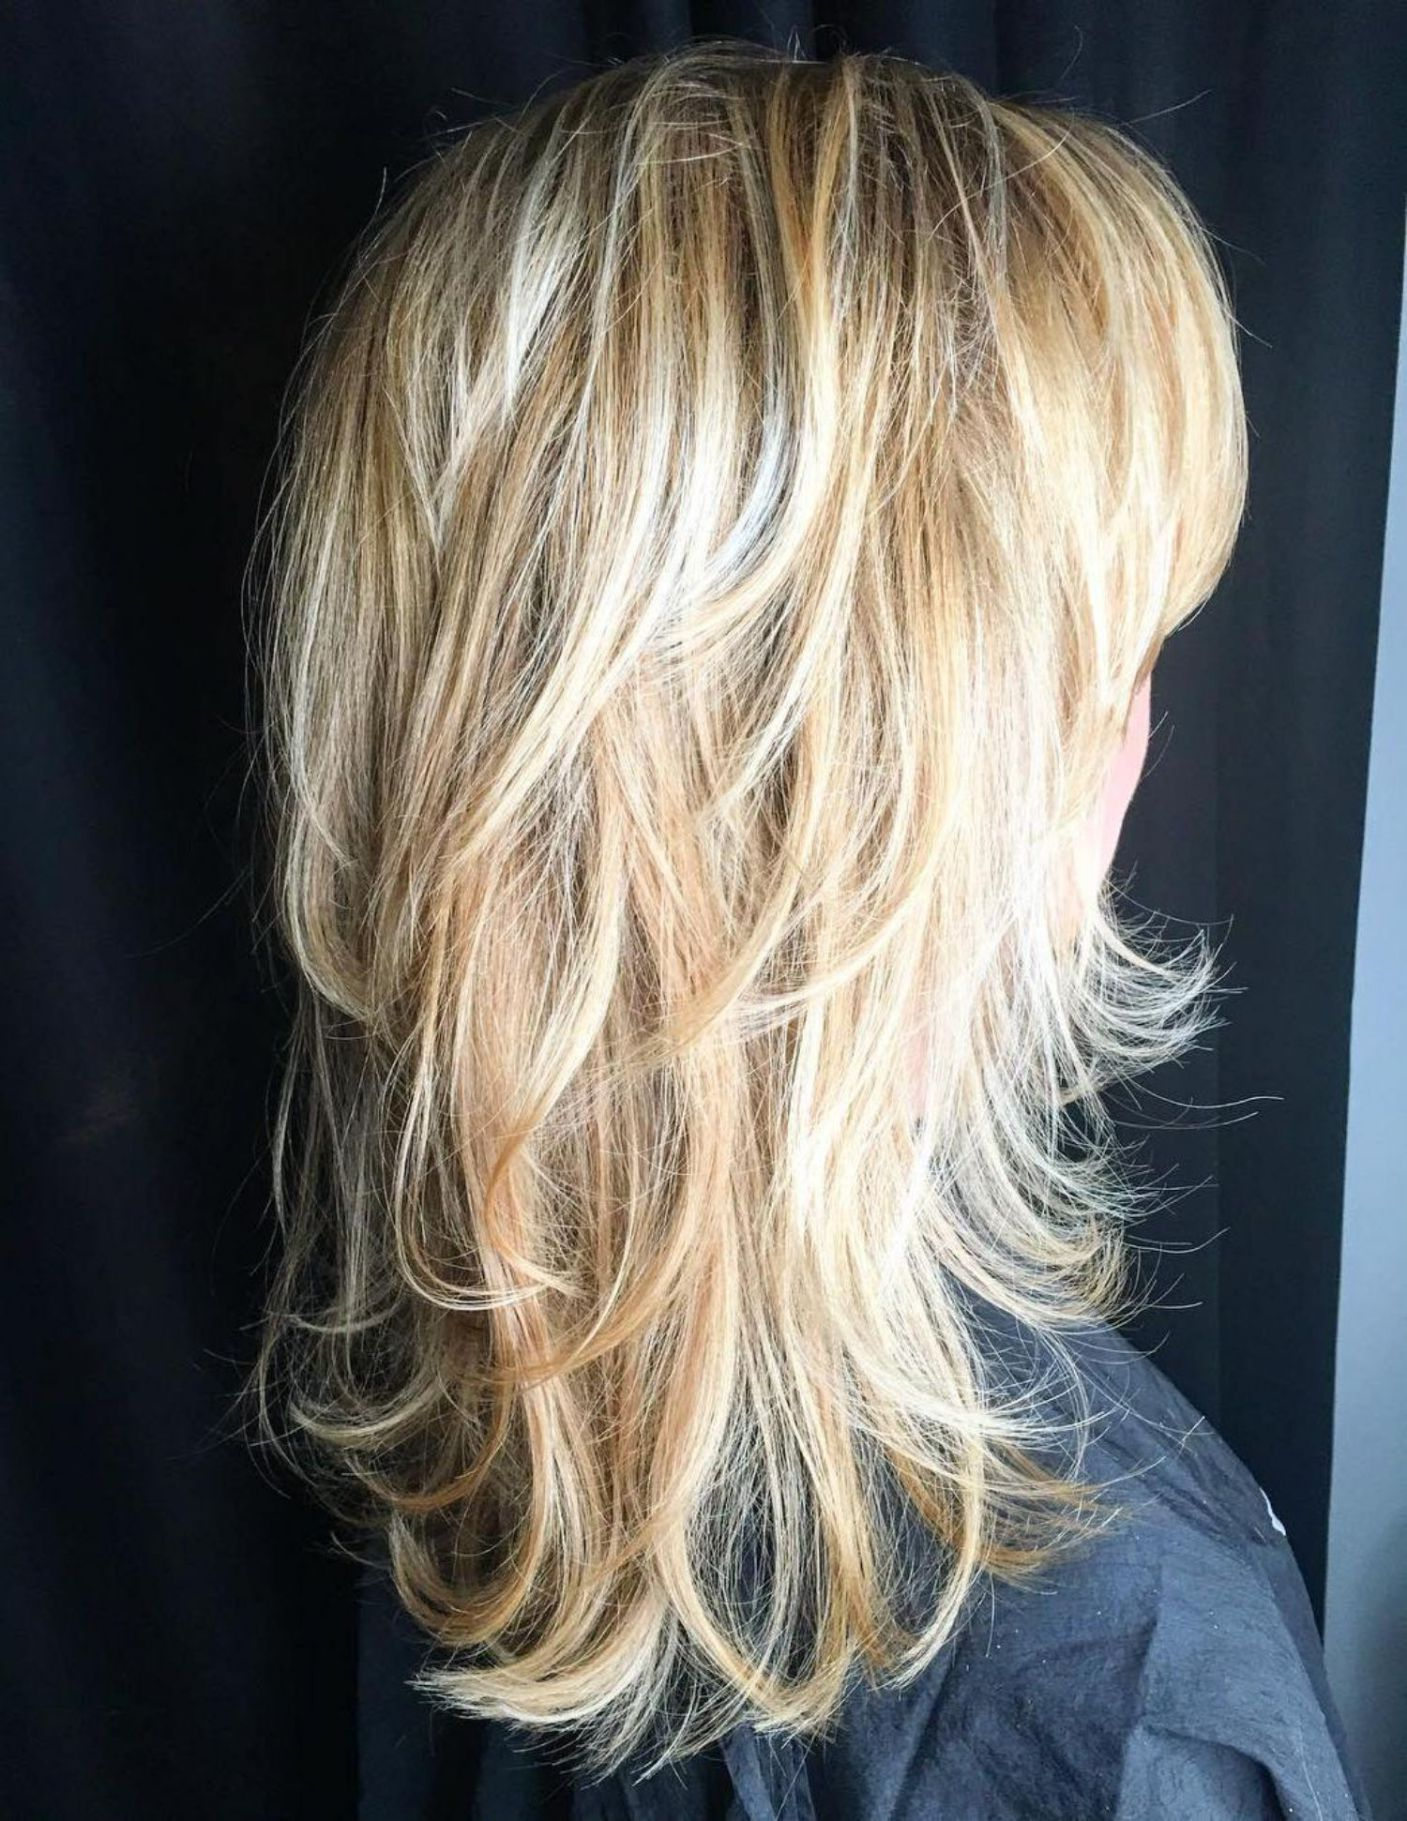 60 lovely long shag haircuts for effortless stylish looks in